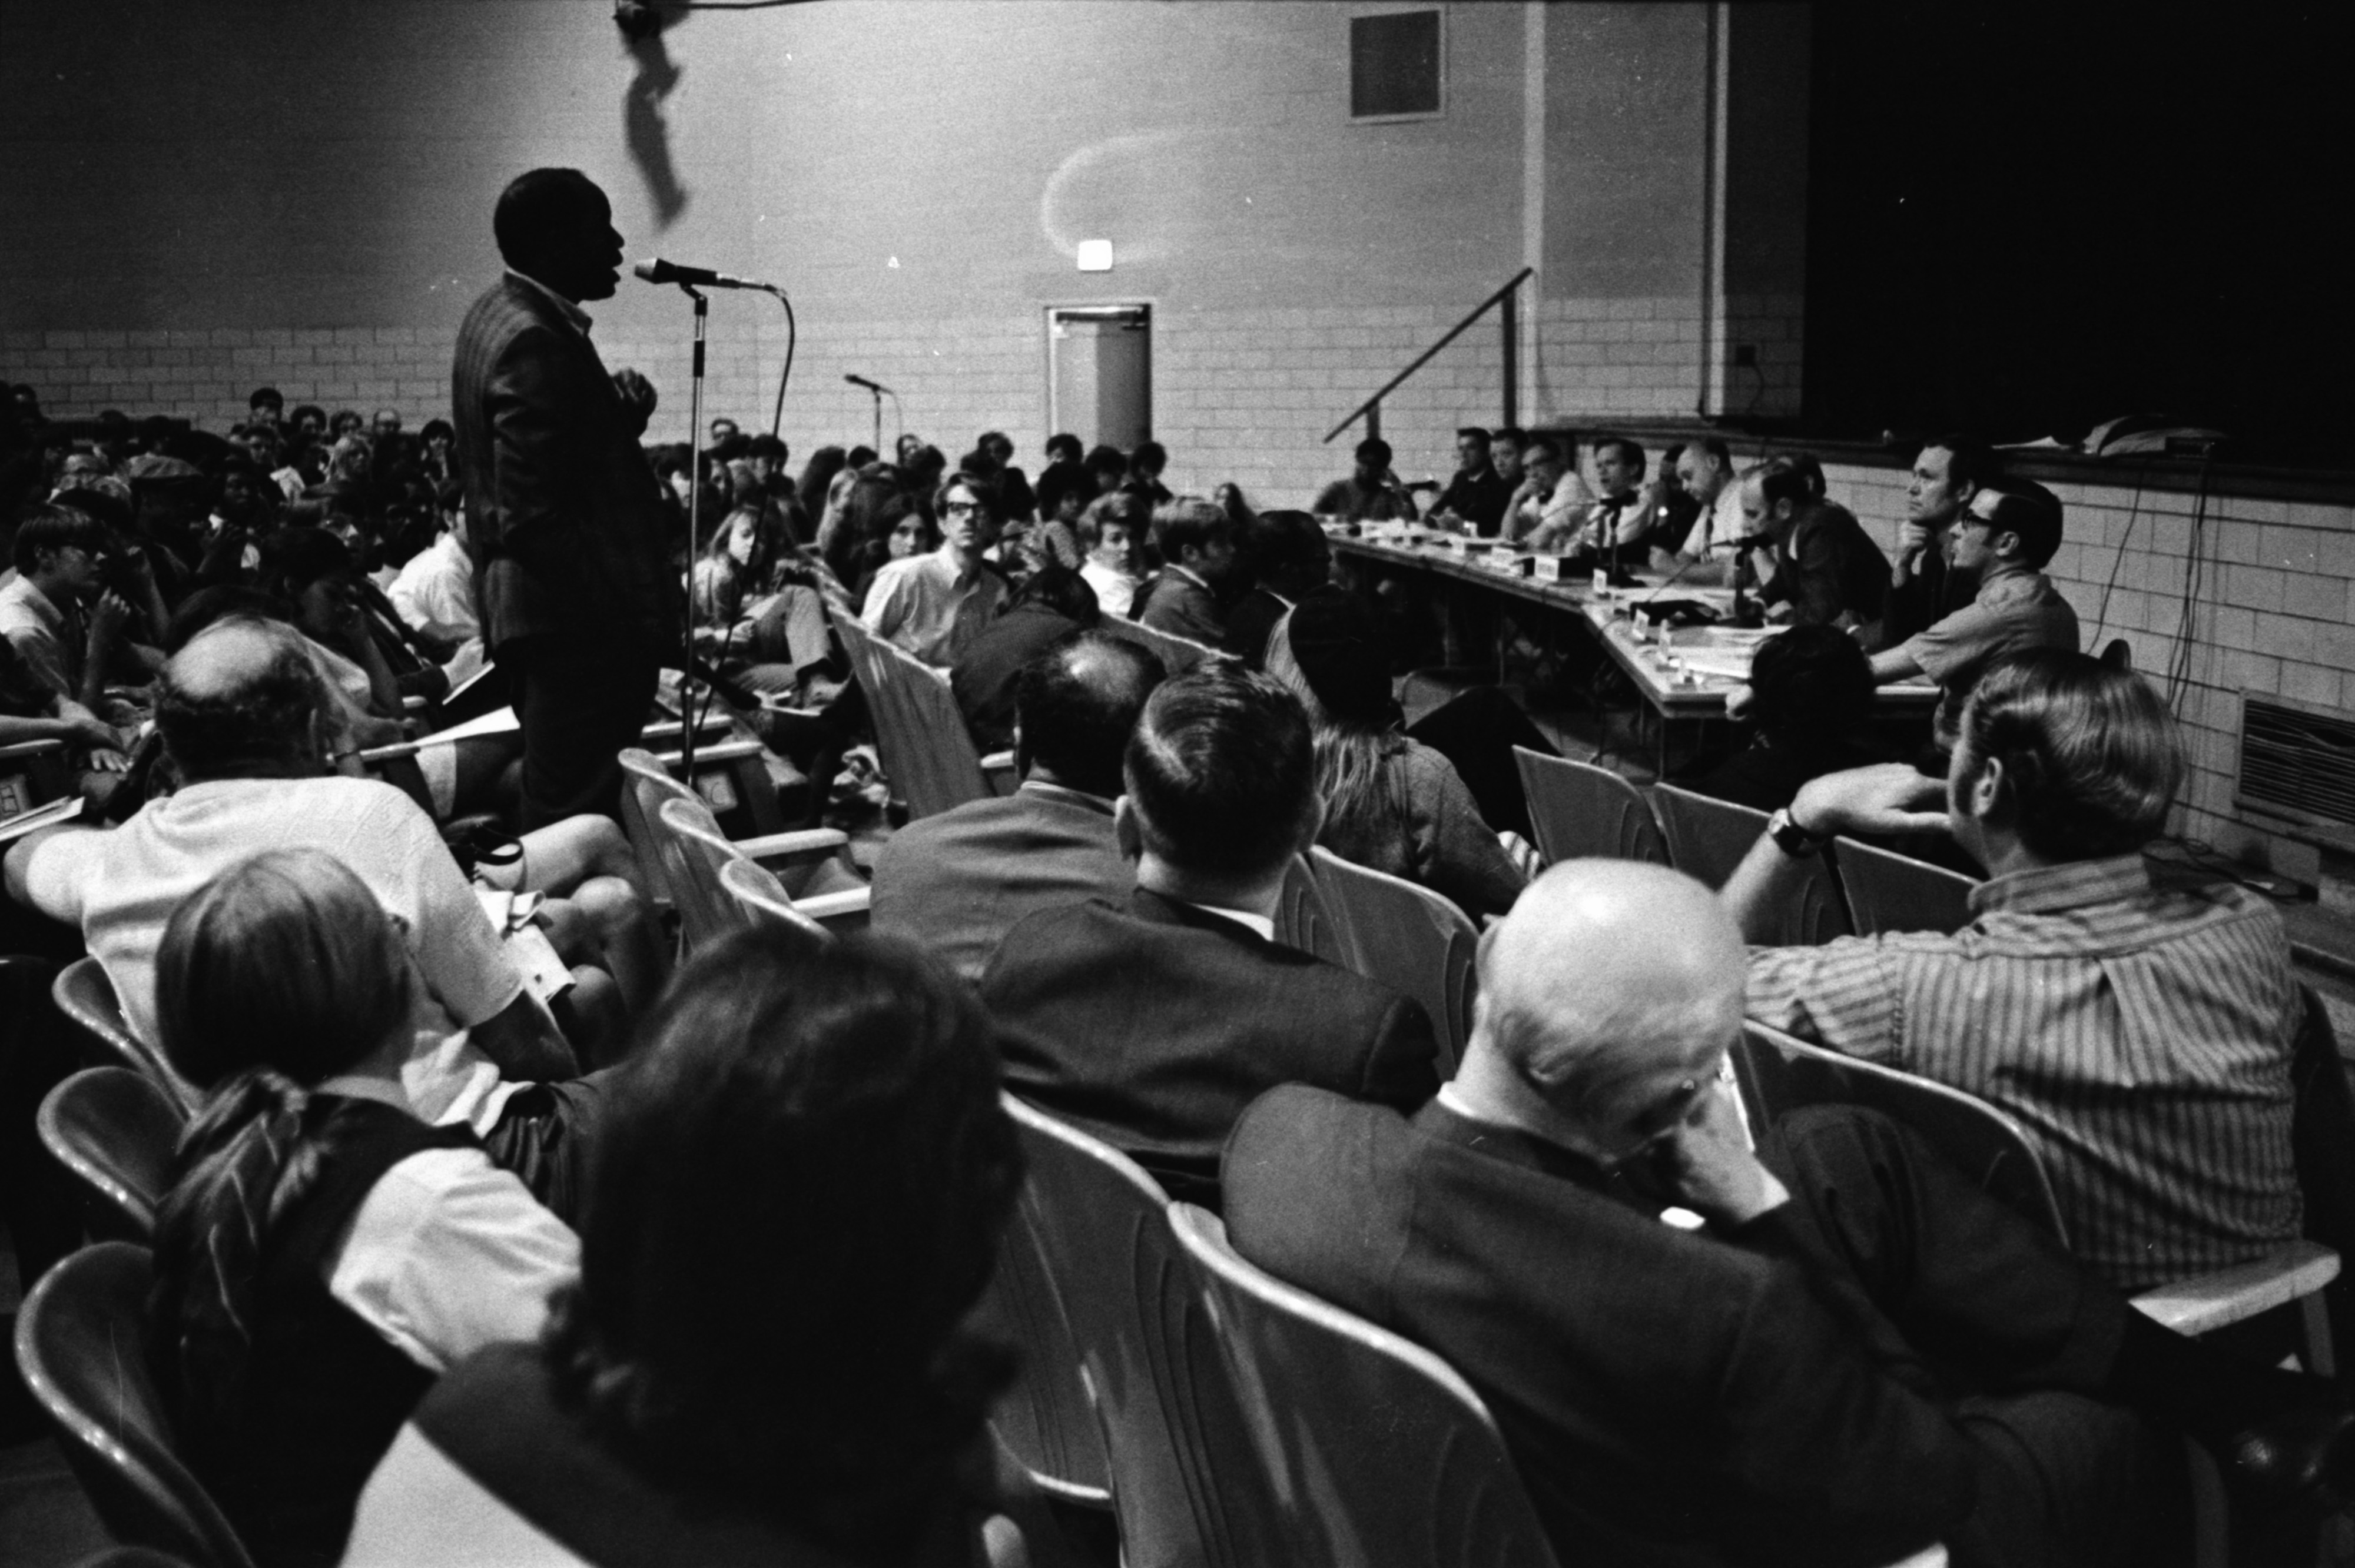 Speaker Addresses Community Forum On Pioneer High School Riot, October 1970 image